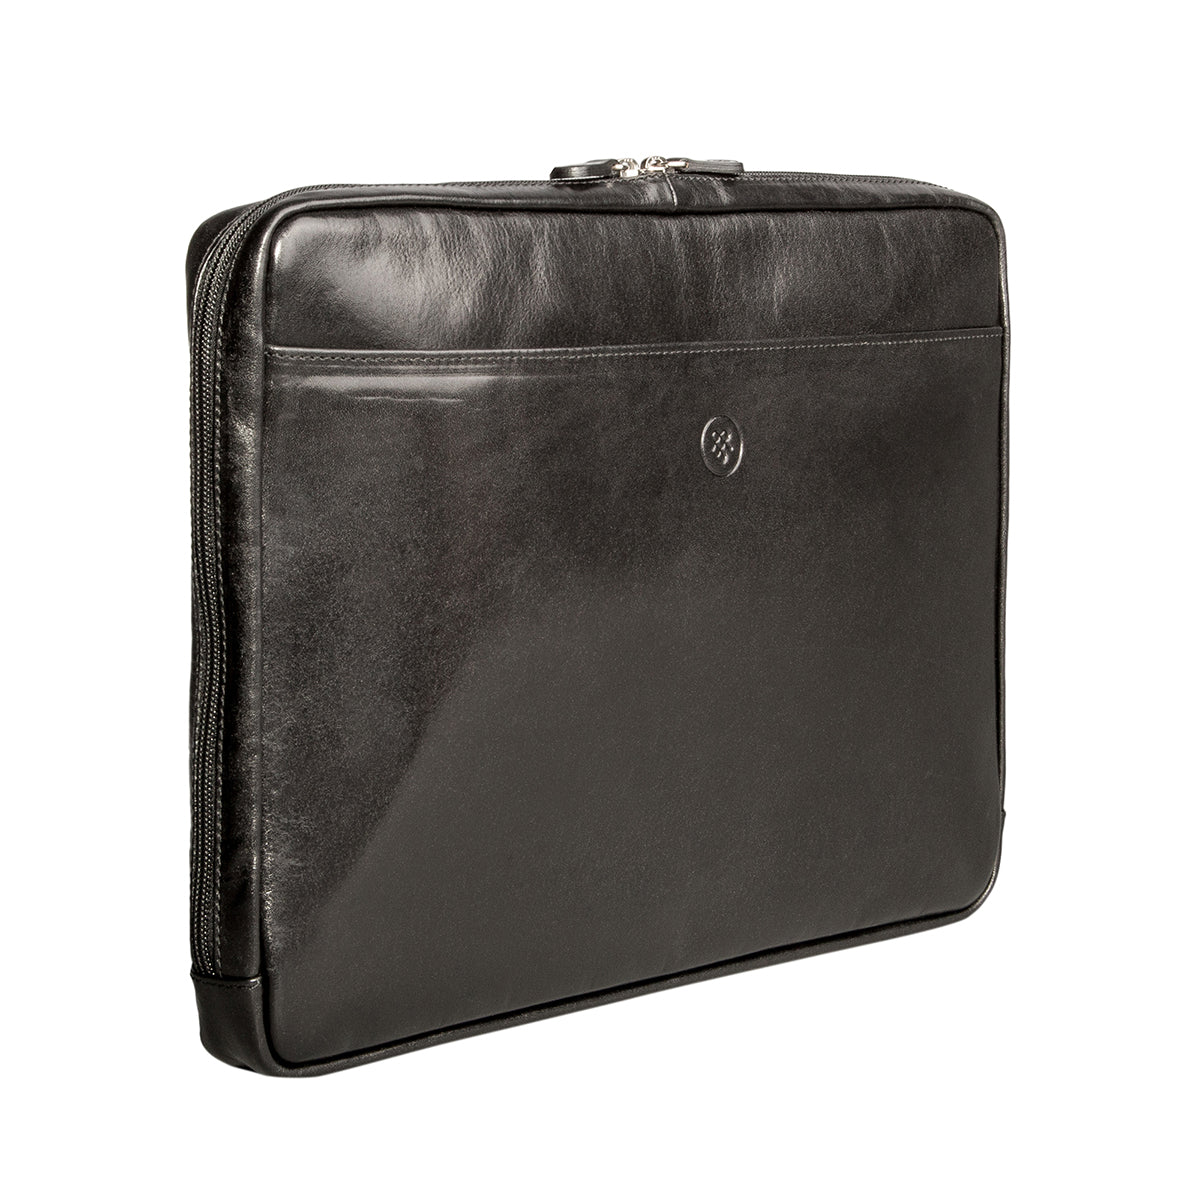 "Image 2 of the 'Verzino' Black Veg Tanned 15"" Leather Laptop Case"